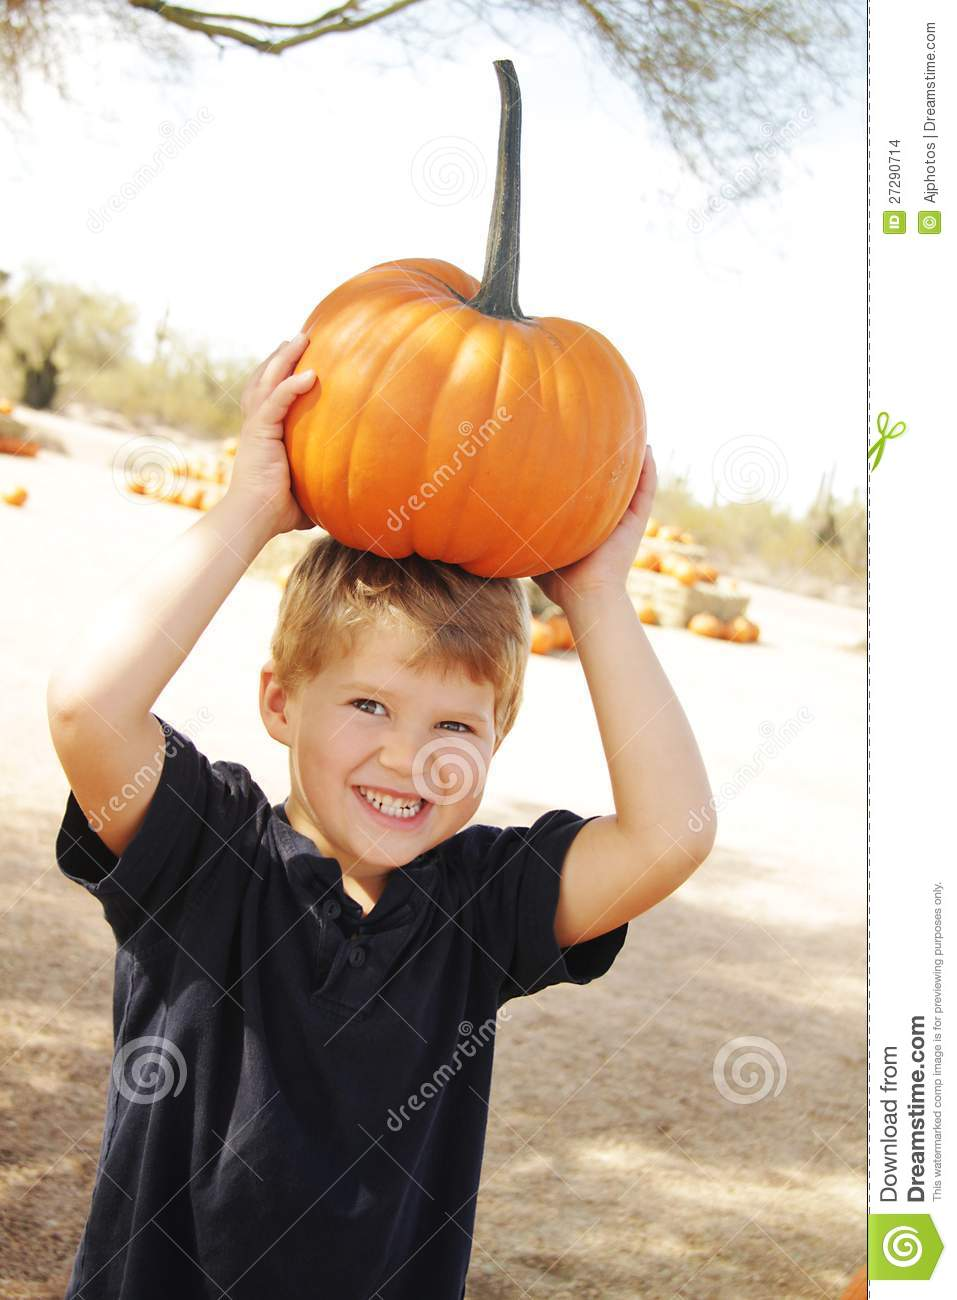 Happy boy at pumpkin patch